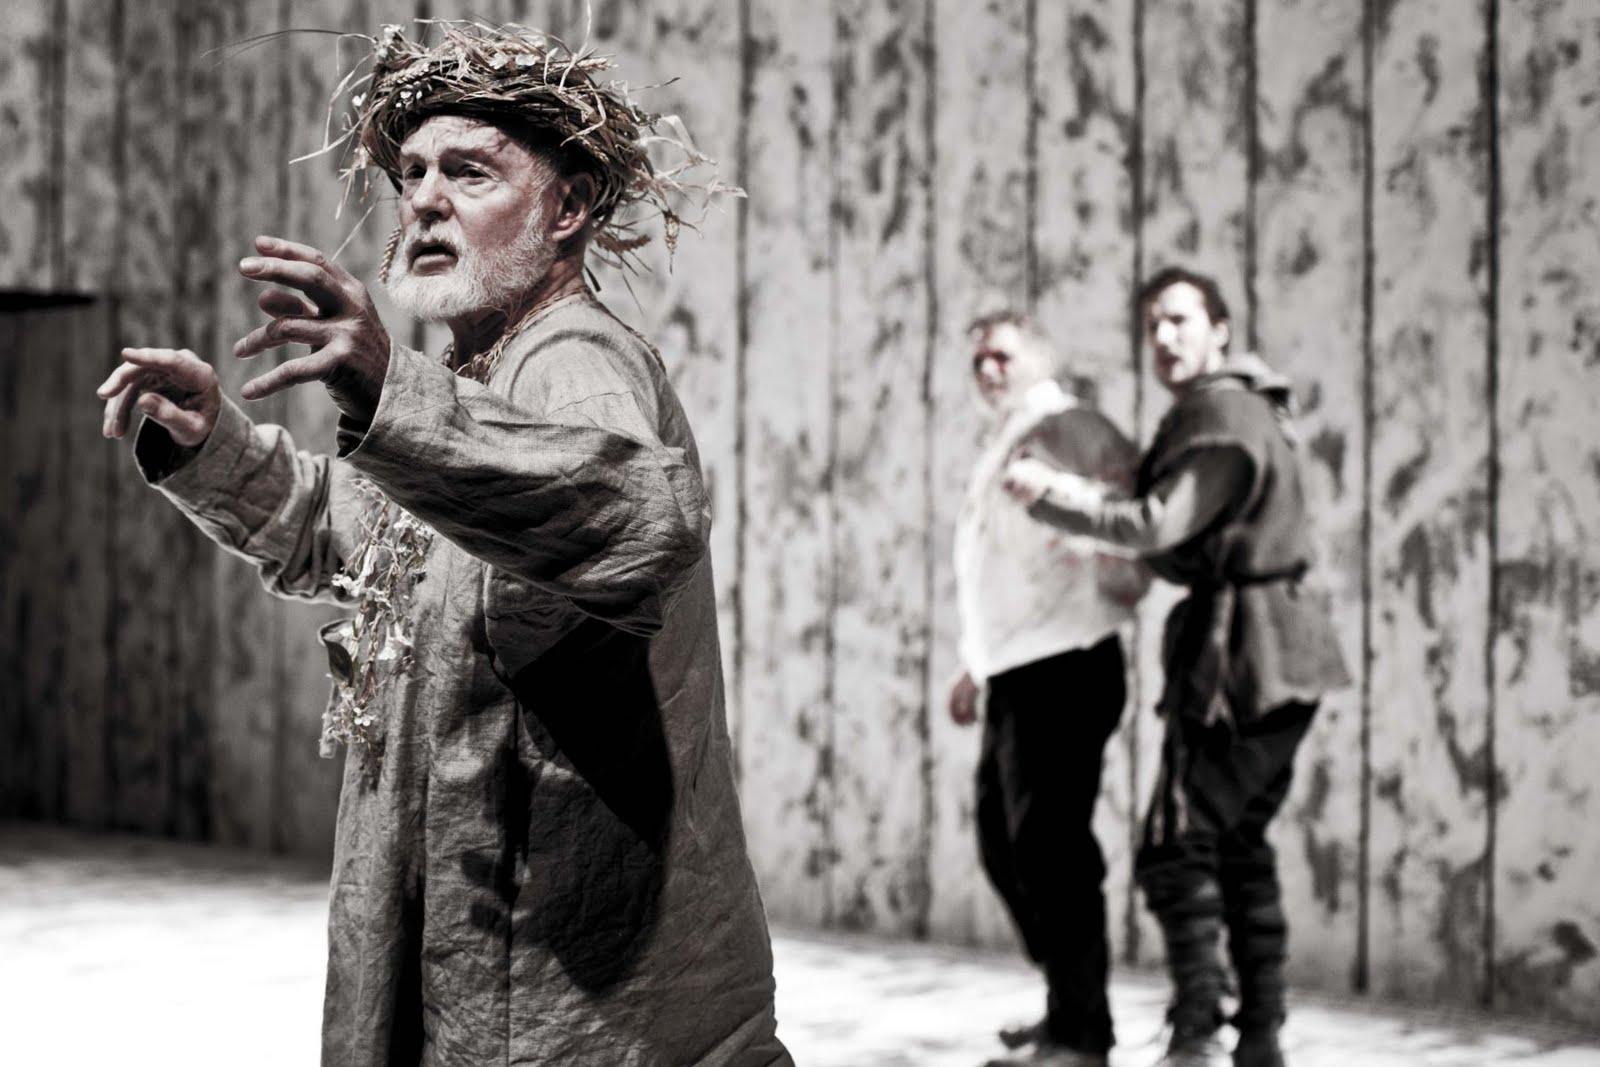 injustice in king lear Many themes are evident in king lear, but perhaps one of the most prevalent relates to the theme of justice shakespeare has developed a tragedy that allows us to see.